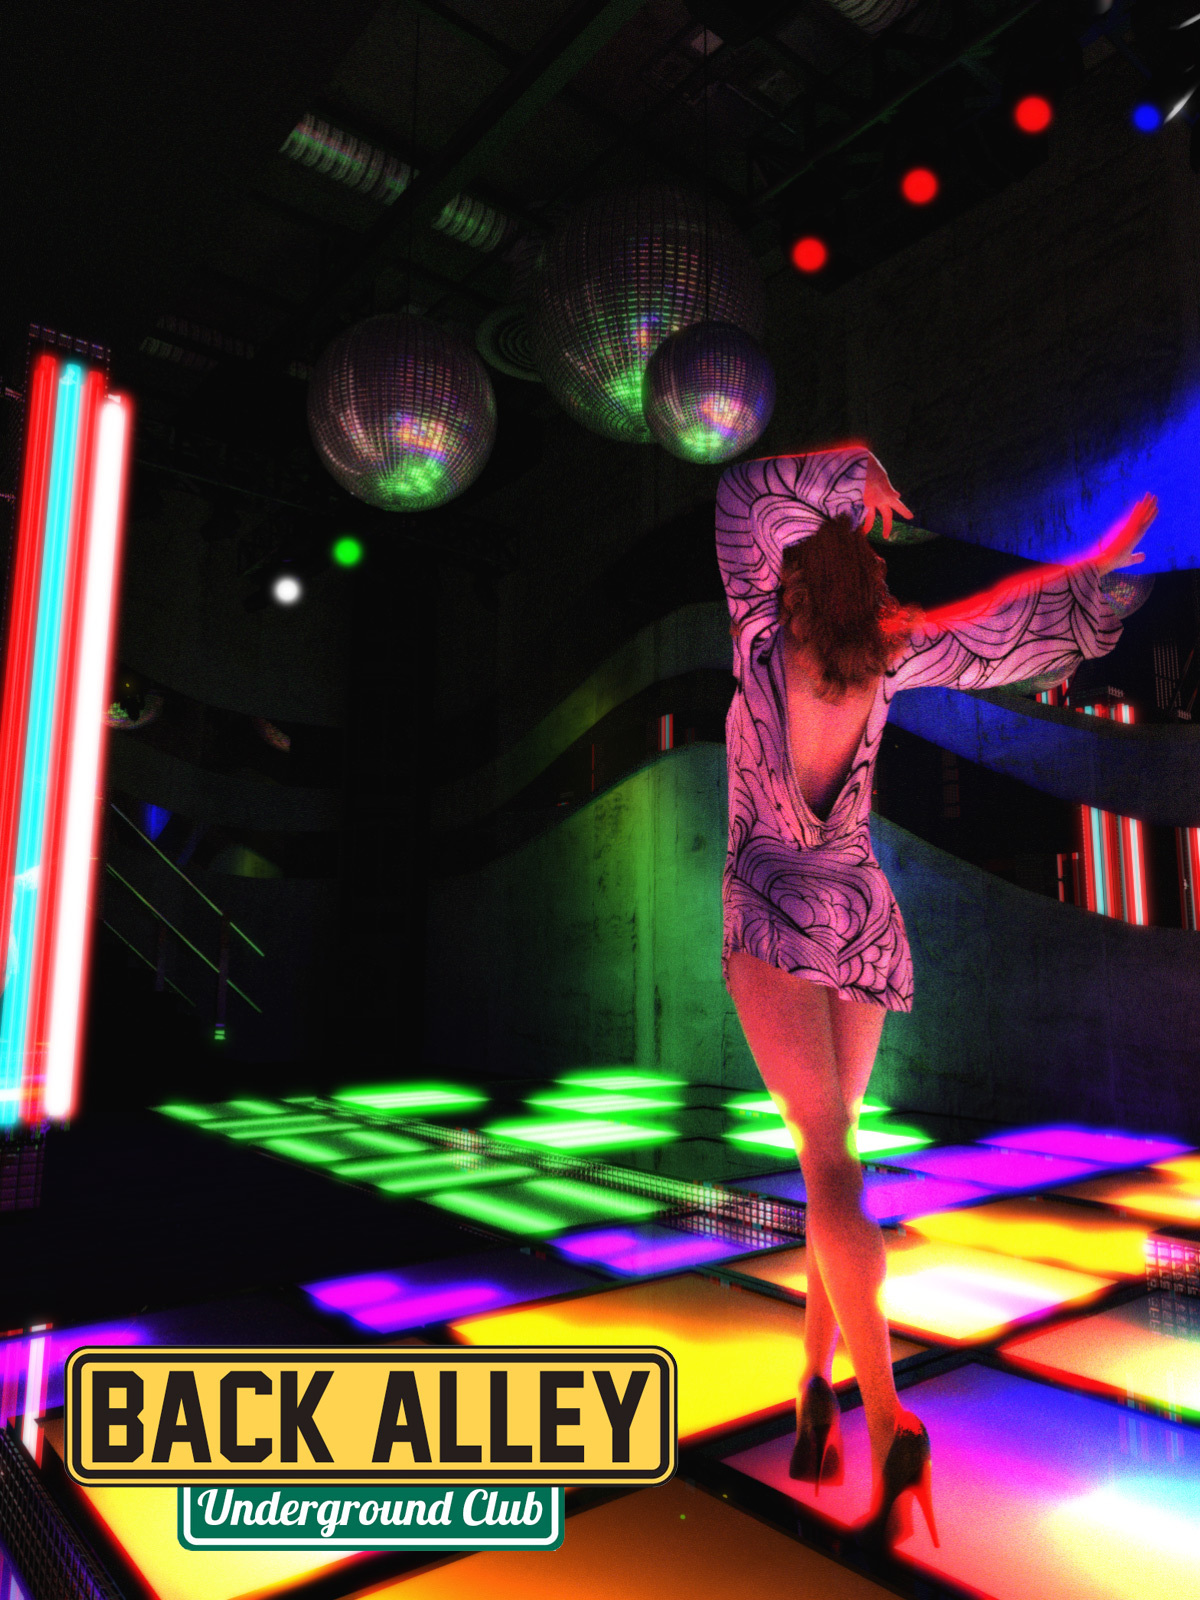 Back Alley Underground Club for DS Iray - Extended License by powerage